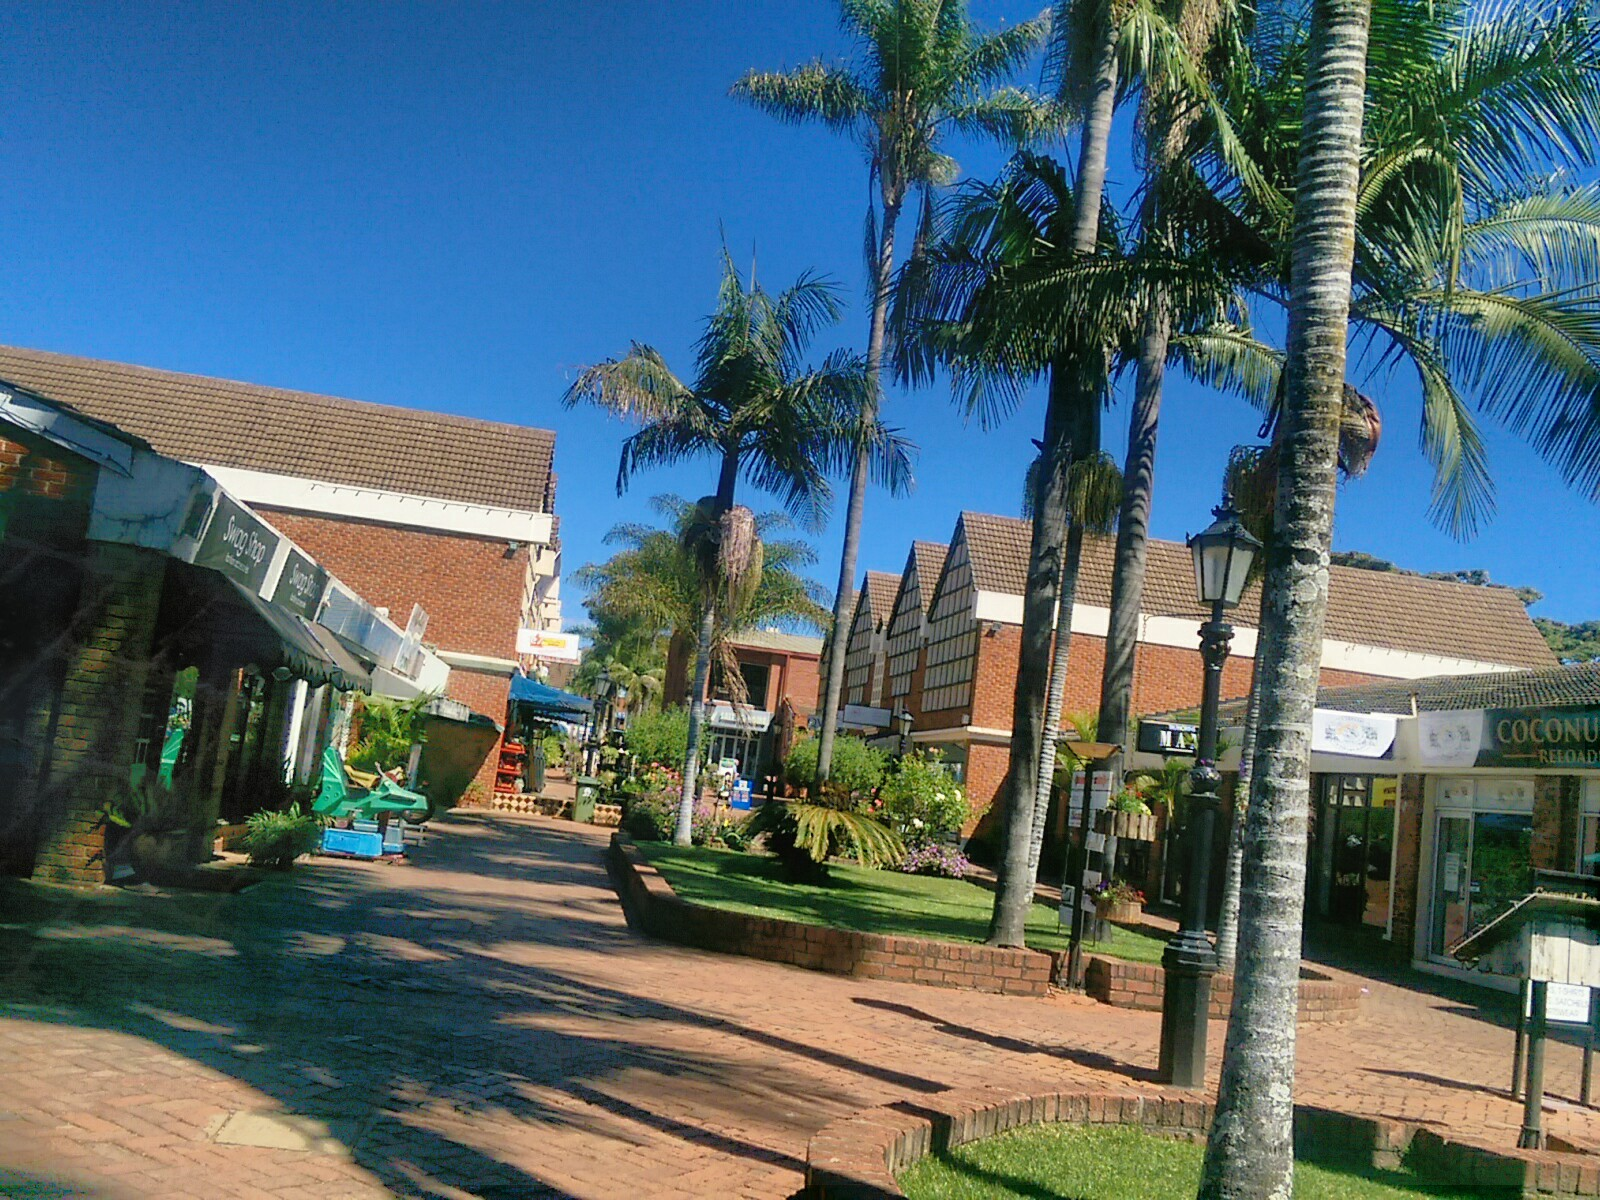 Bright blue skies over tiled walk ways with palm trees and shops